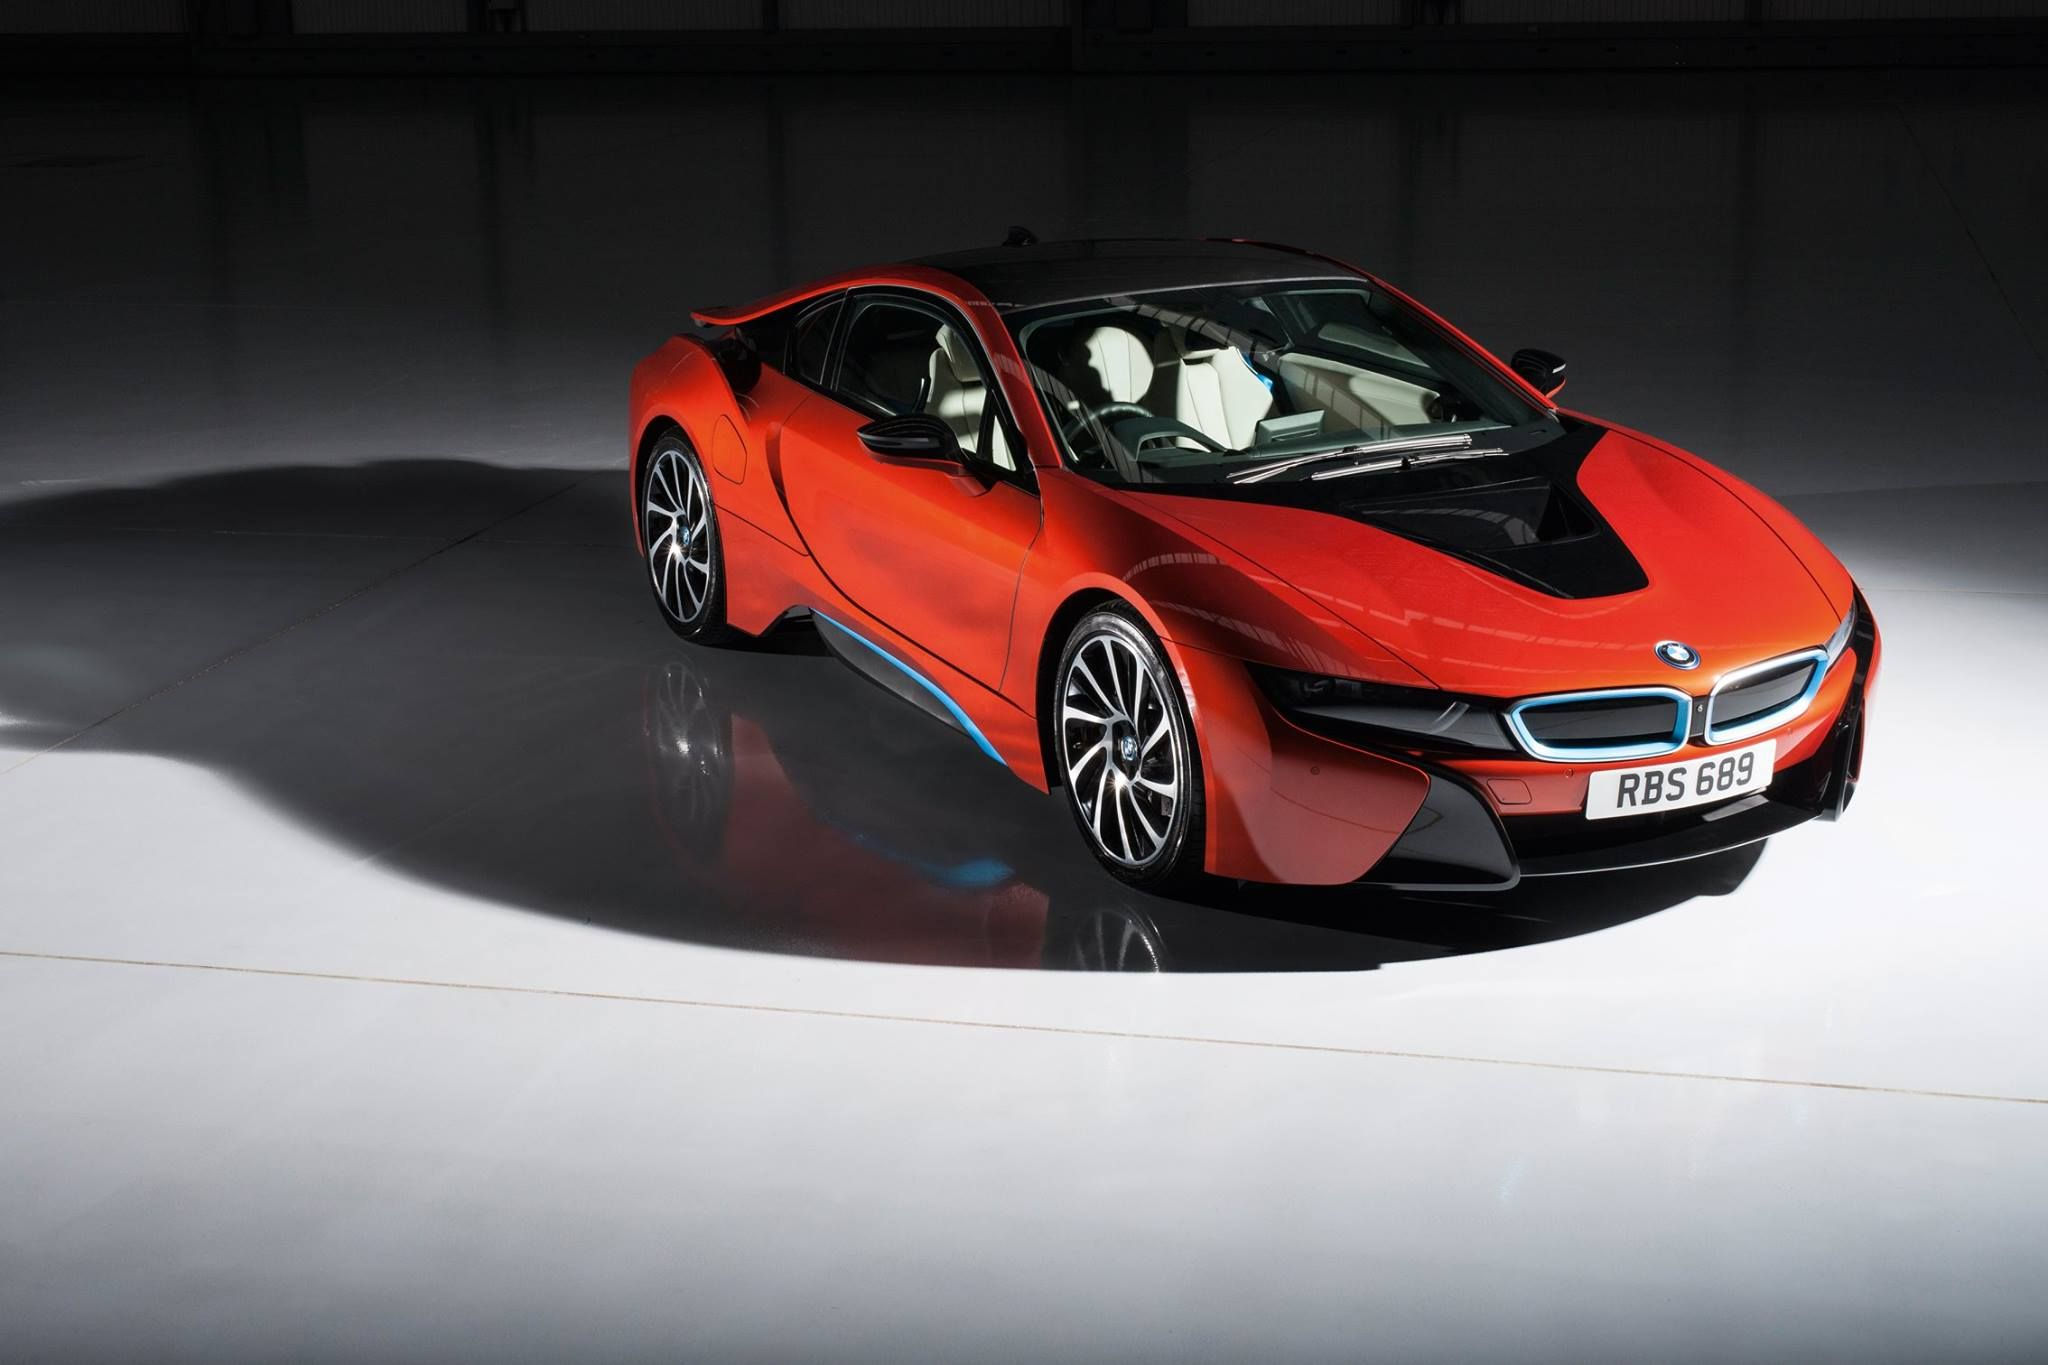 Bmw I8 Coupe Edrive Red Devil Fire Rainbow Electric Burn